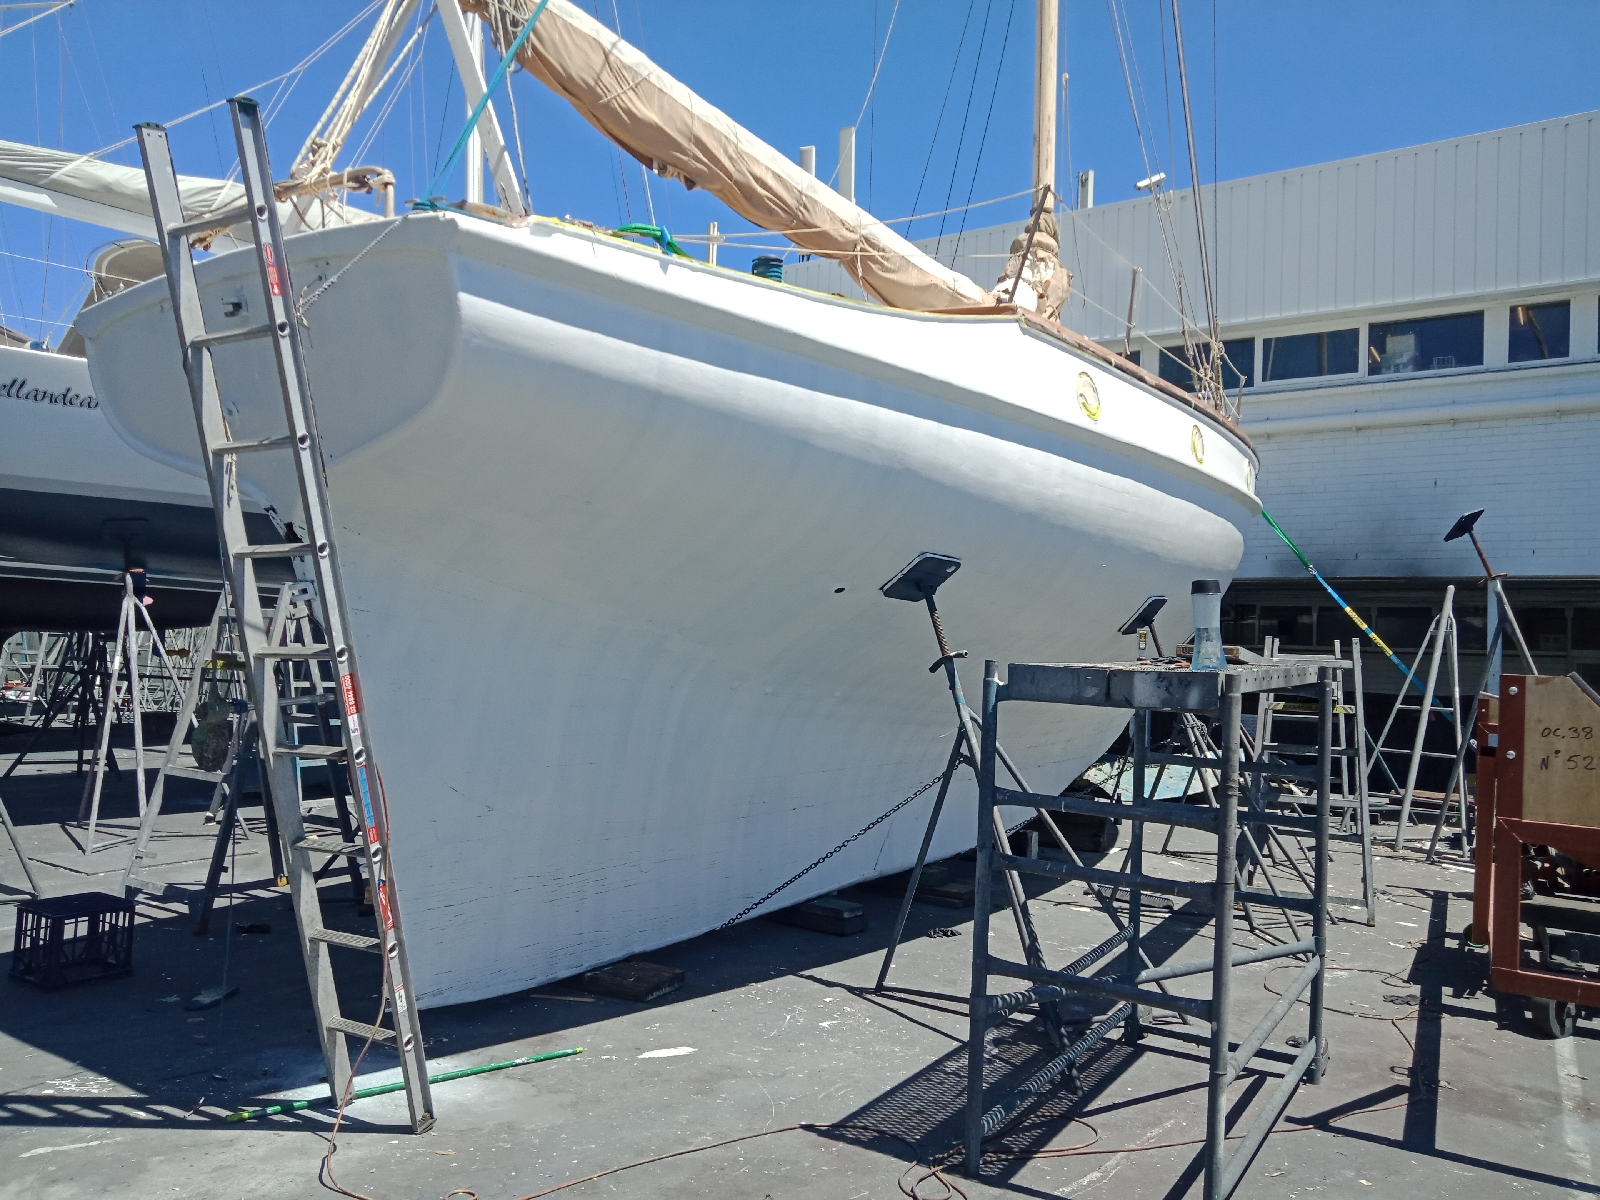 Classic Ranger Restoration  Paint and hull works